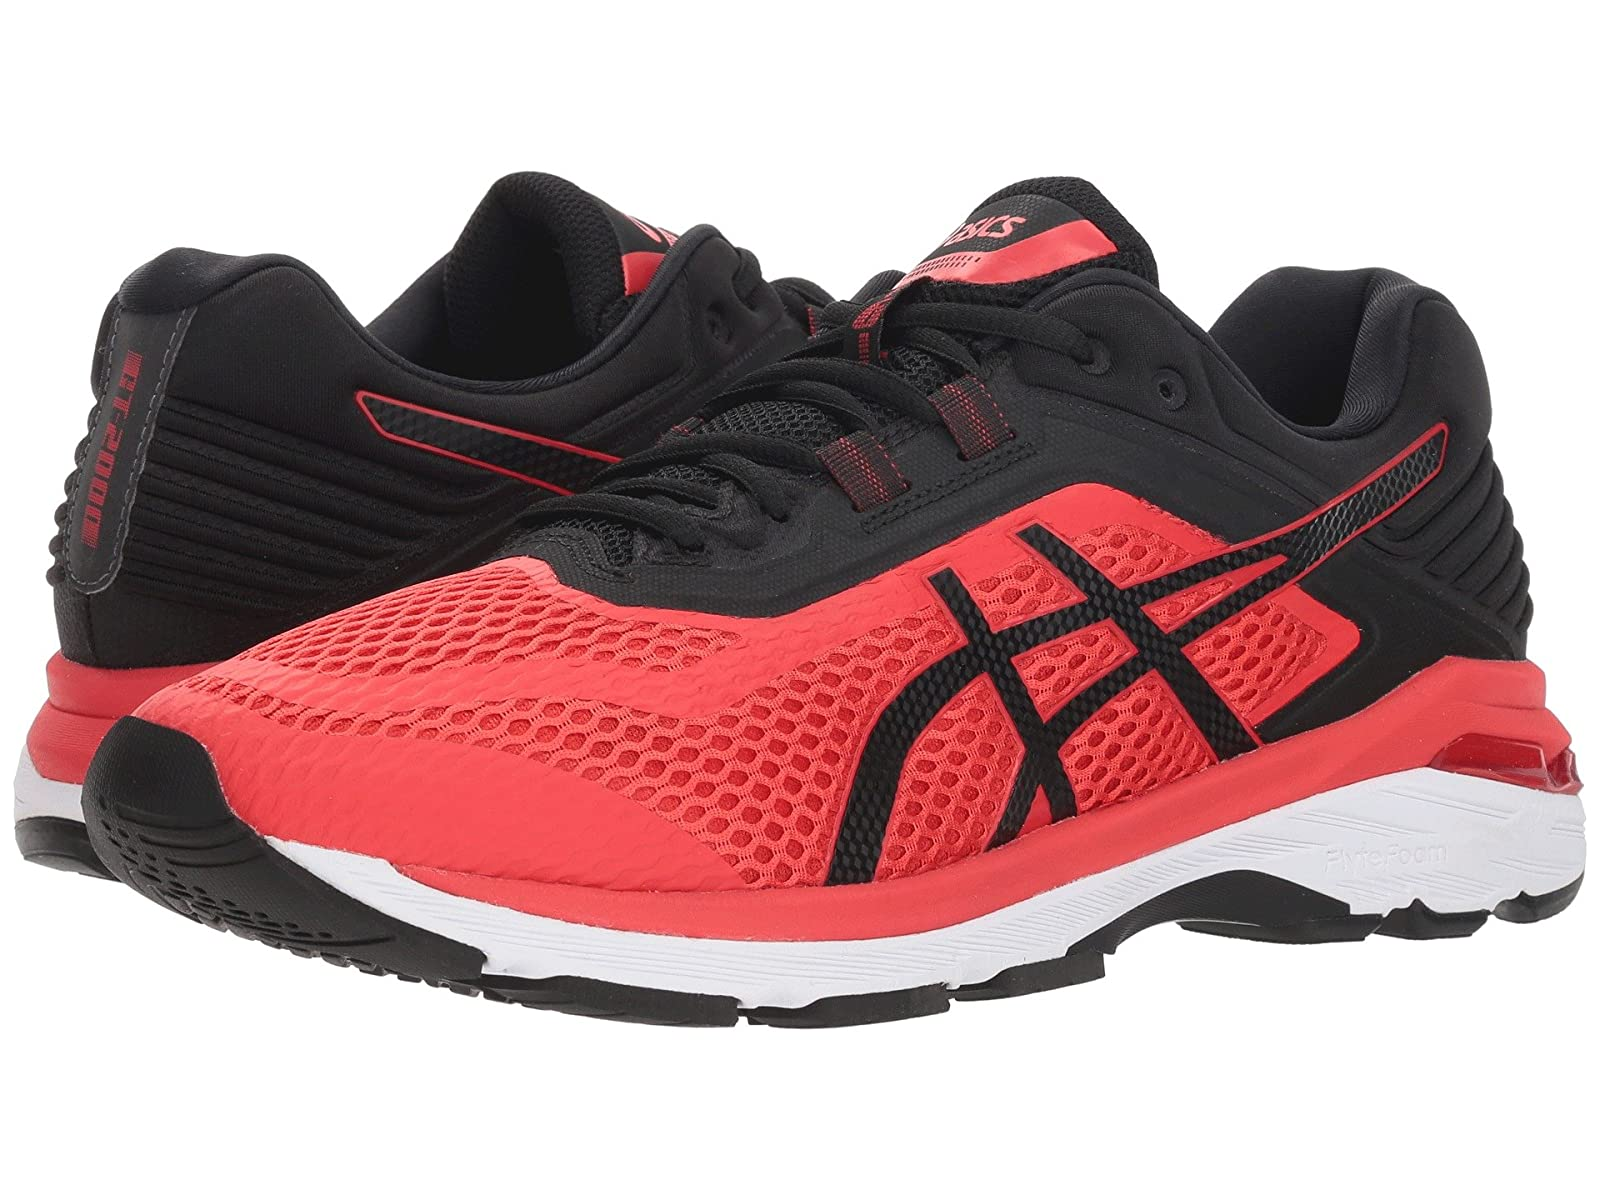 ASICS GT-2000 6Atmospheric grades have affordable shoes